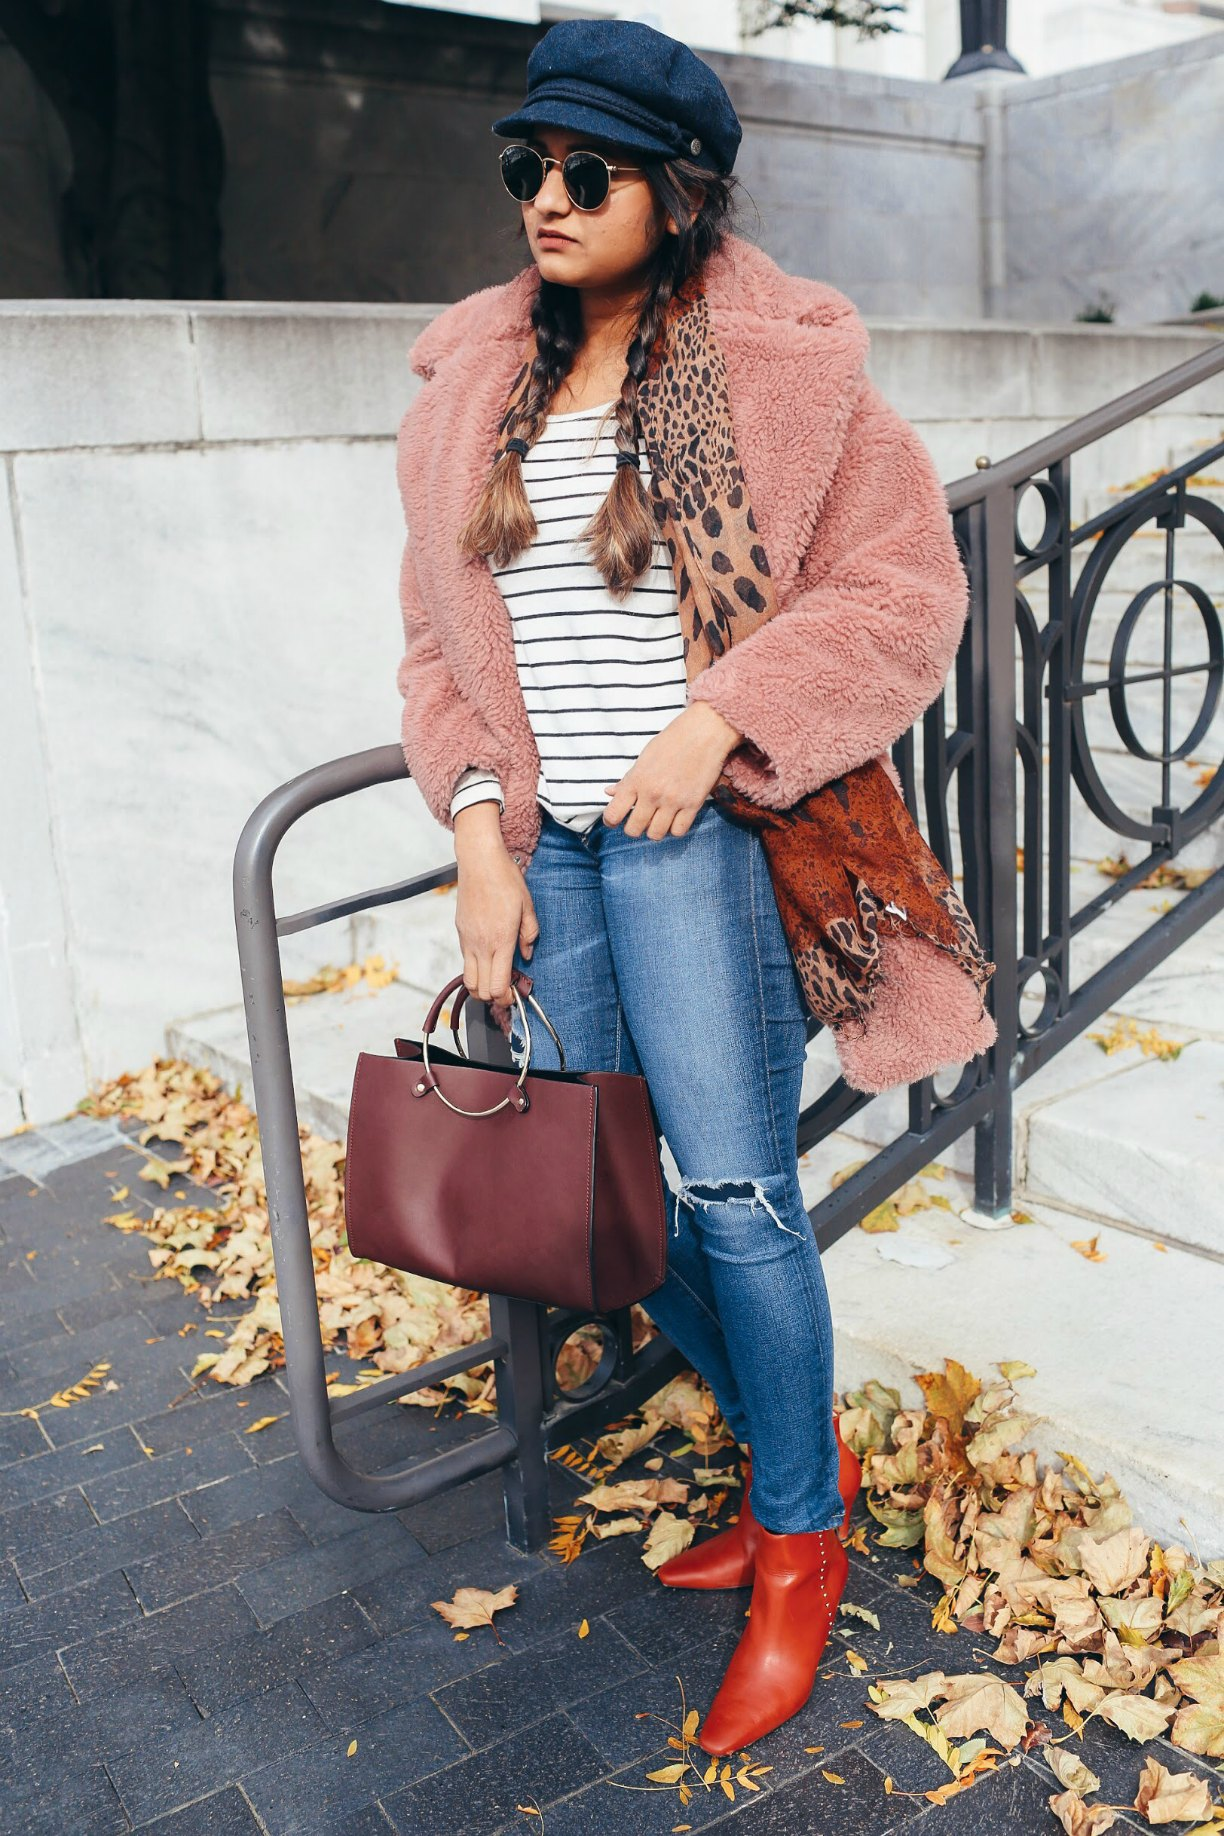 Lifestyle Blogger Surekha of Dreaming Loud Wearing Zara HIGH HEEL LEATHER ANKLE BOOTS WITH STUDS - Top Winter Coat Trends featured by popular Ohio modest fashion blogger, Dreaming Loud